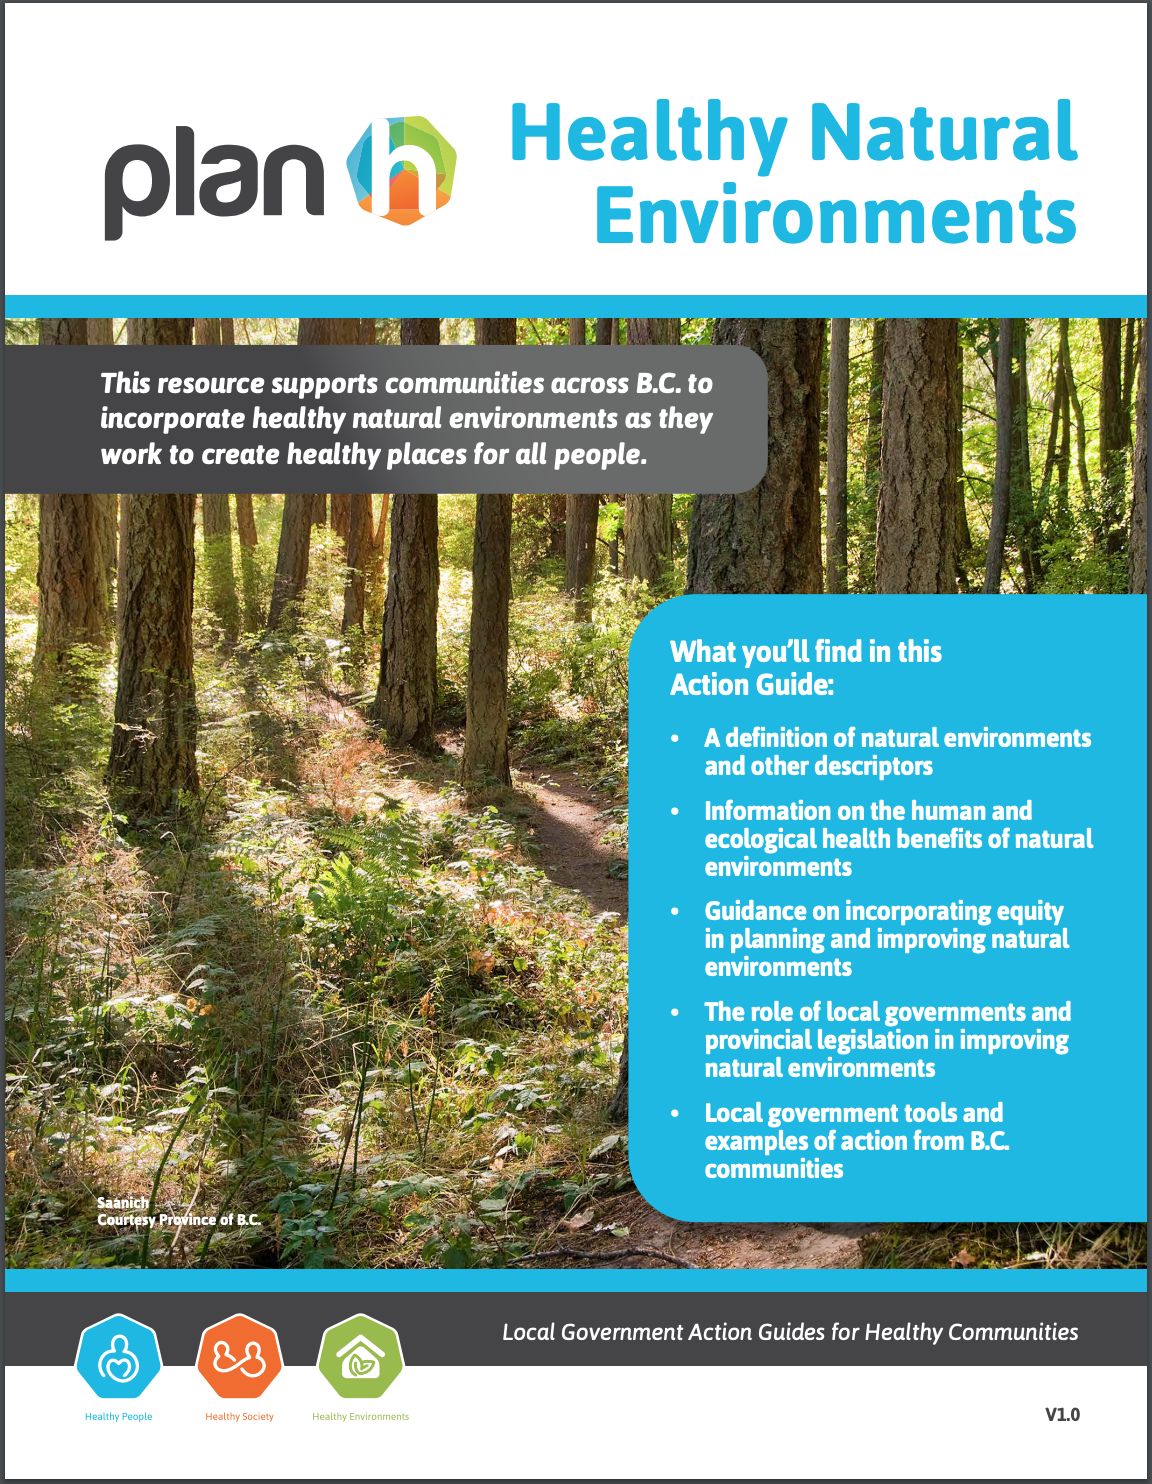 Healthy Natural Environments Action Guide released